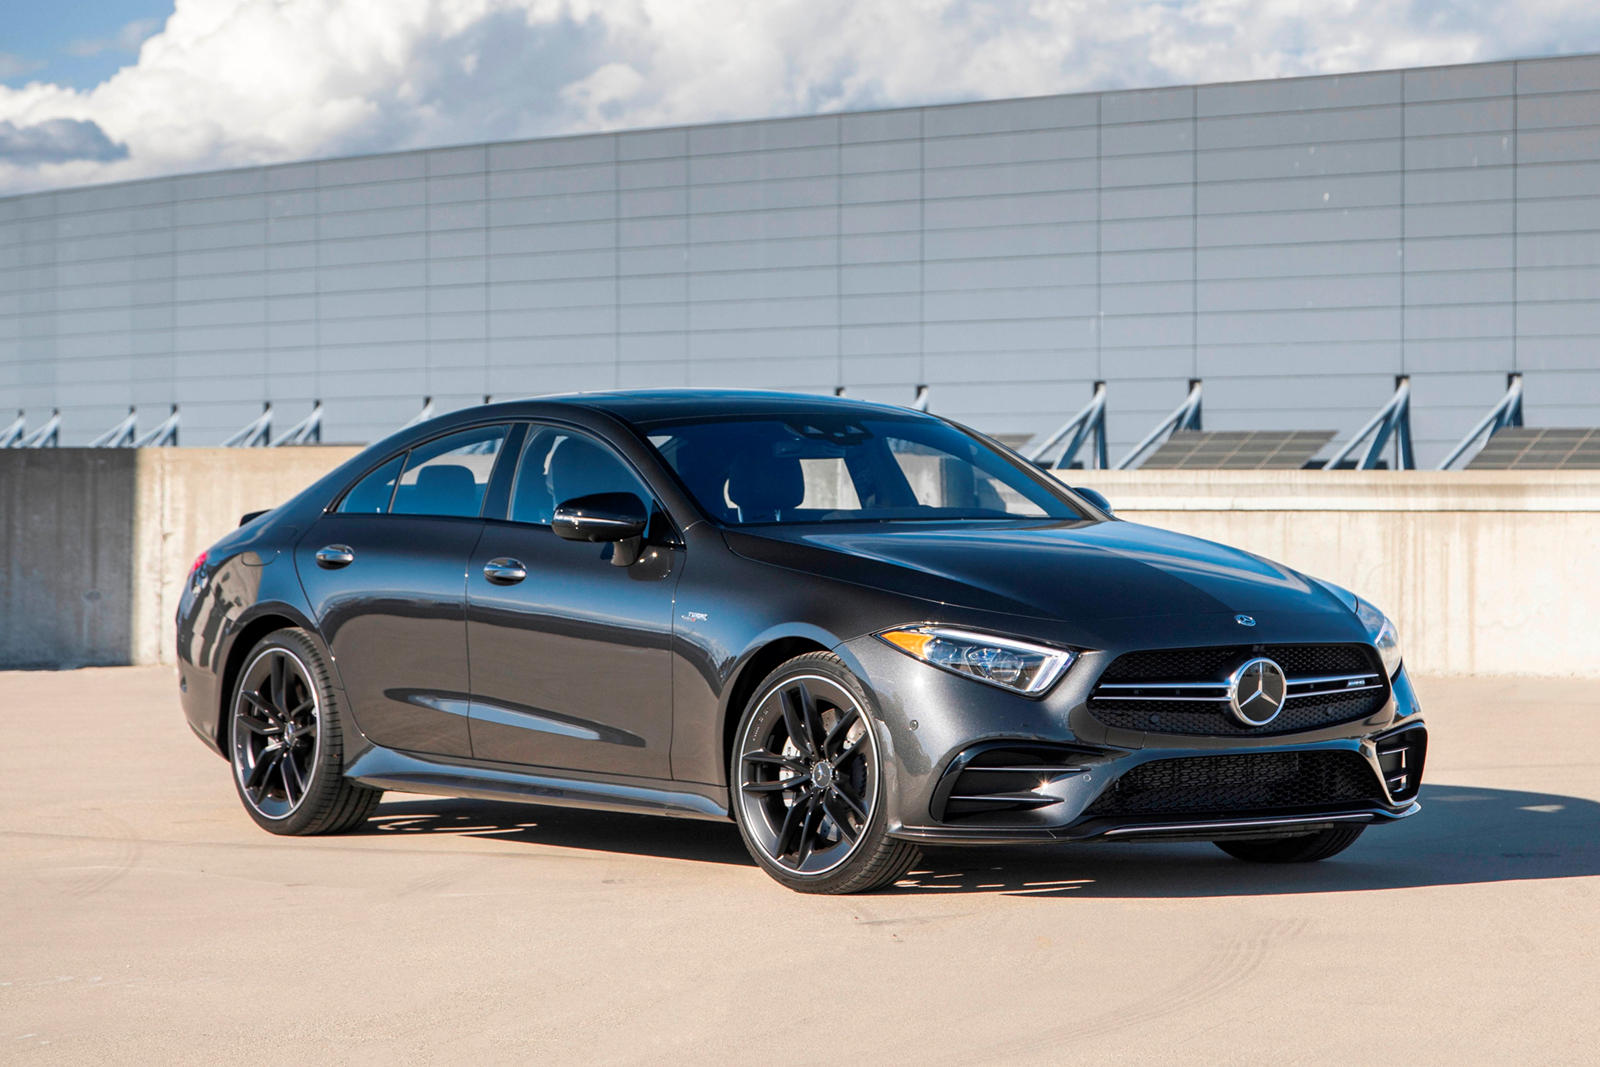 2019 Mercedes-AMG CLS 53 Review, Trims, Specs and Price ...